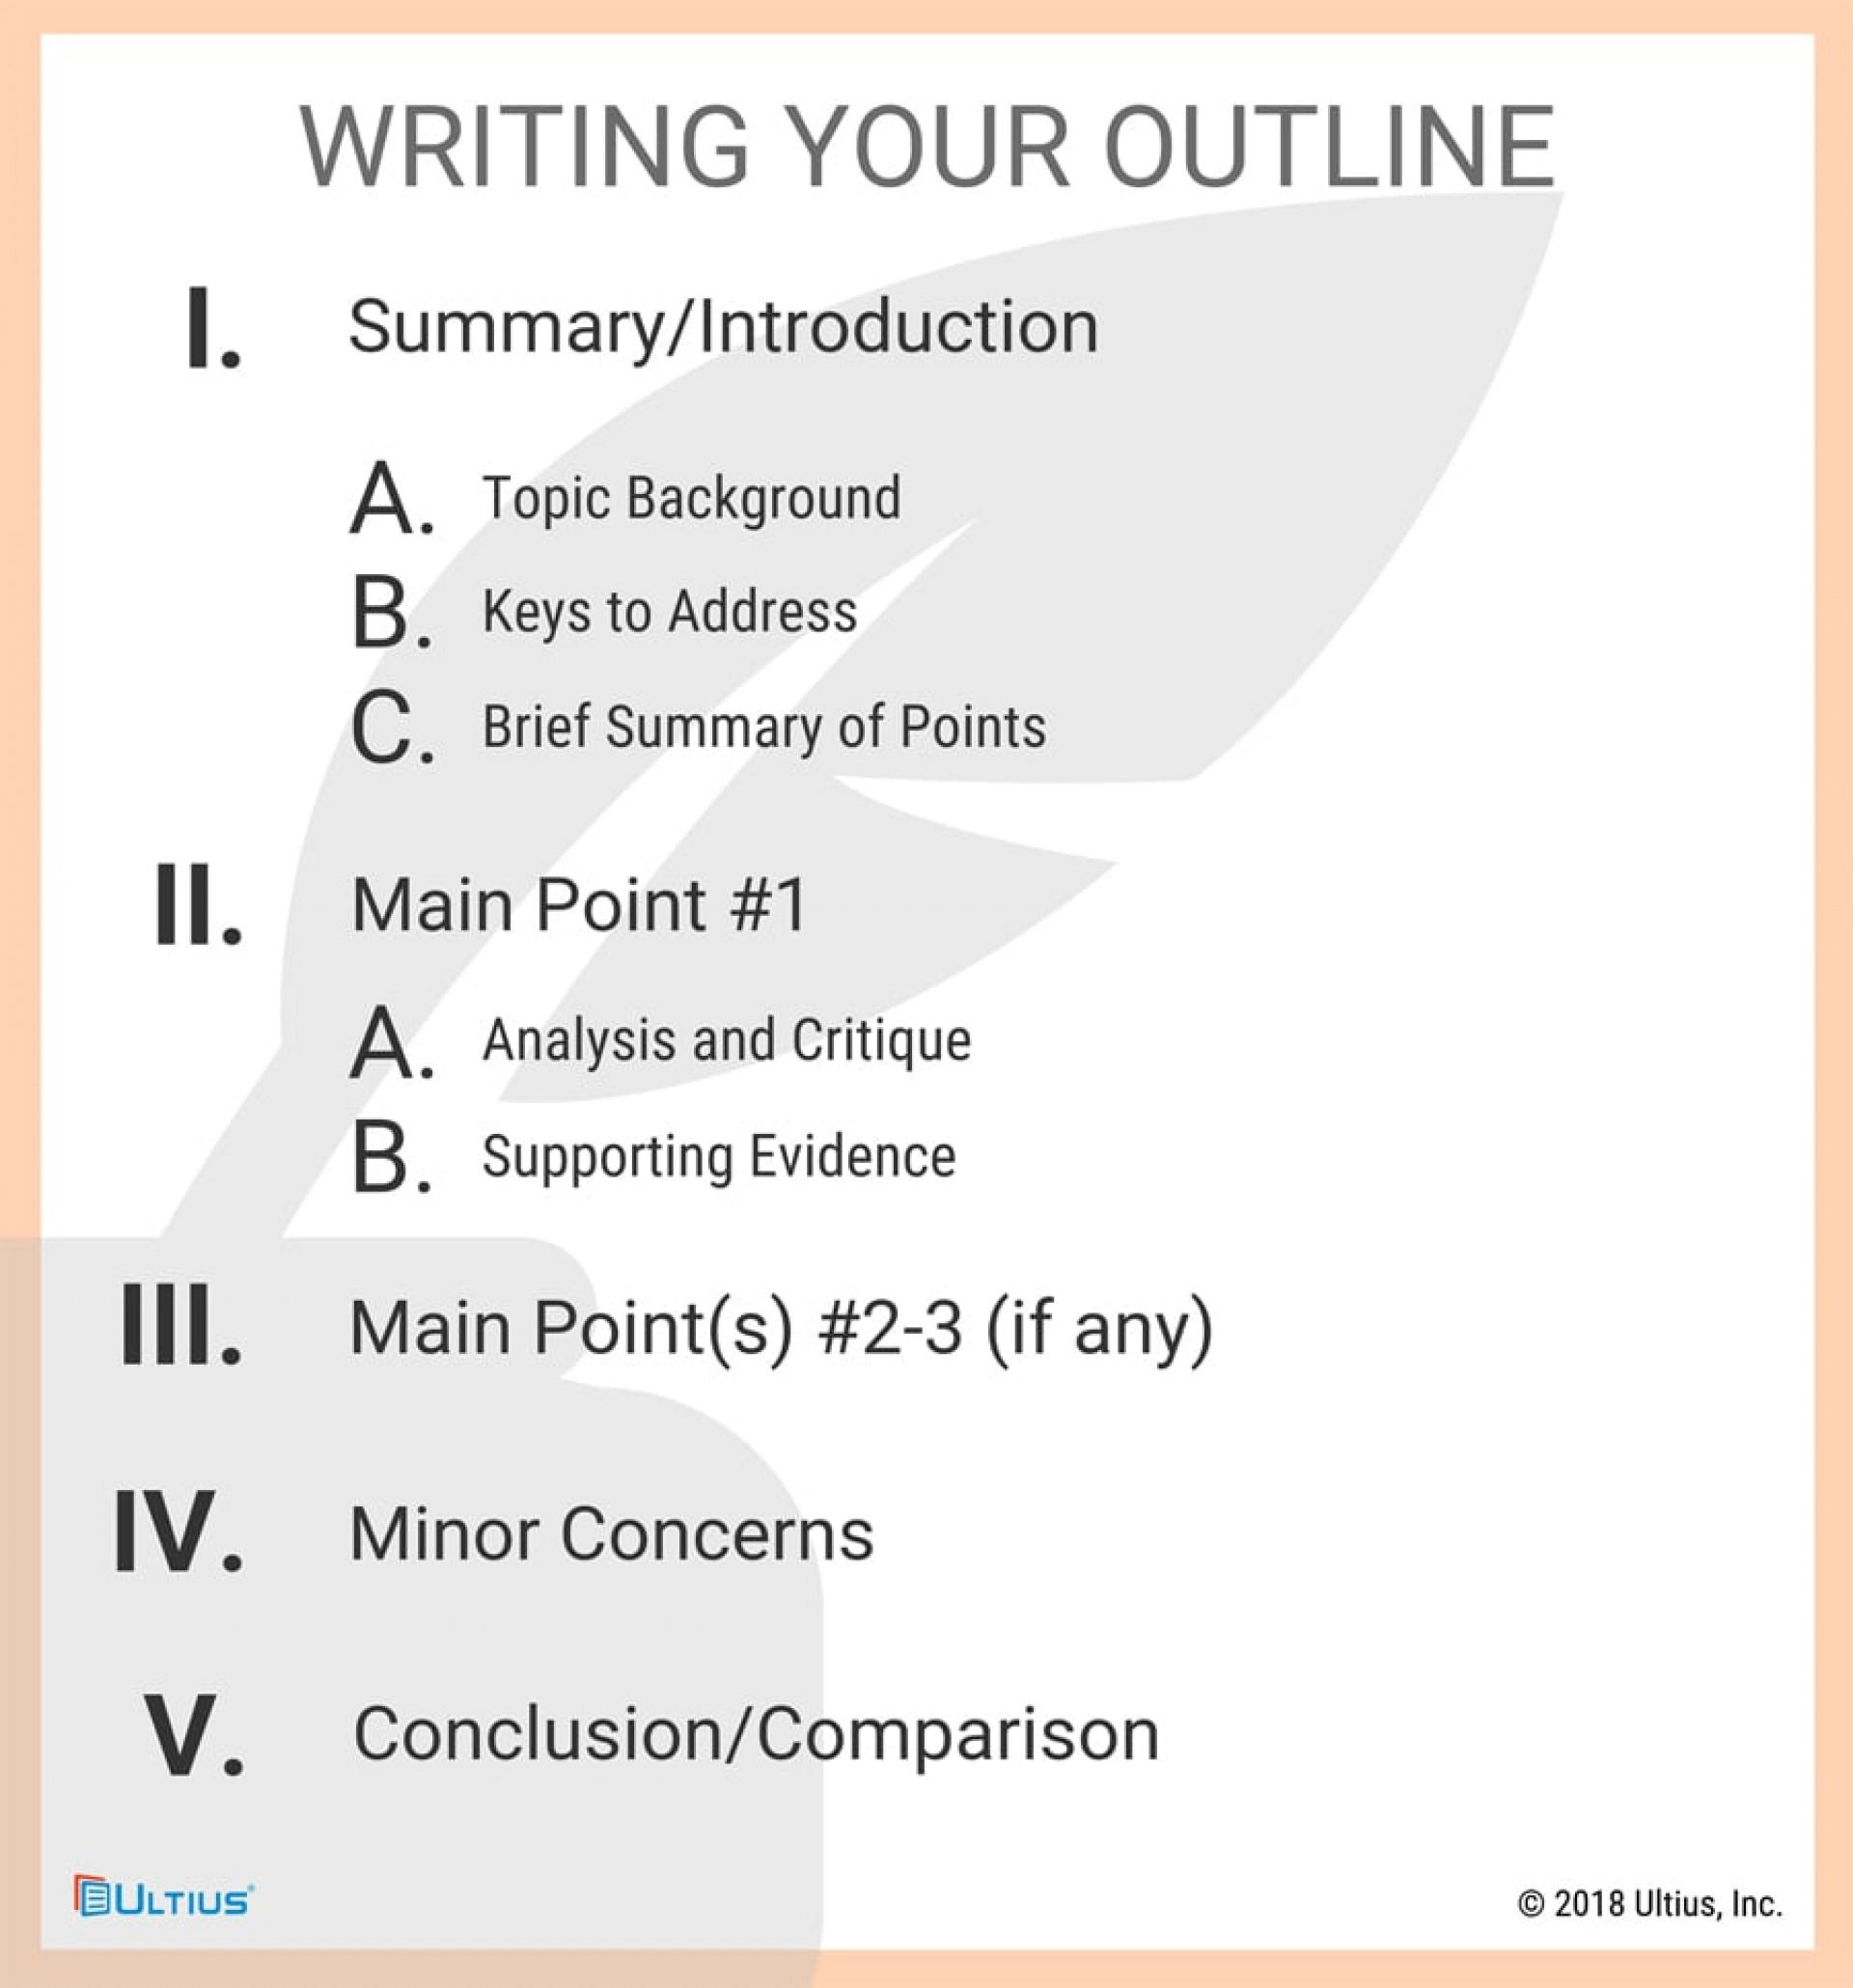 017 Writing Your Outline Essay Example Whats An Phenomenal Expository What Is Powerpoint What's Does Consist Of 1920